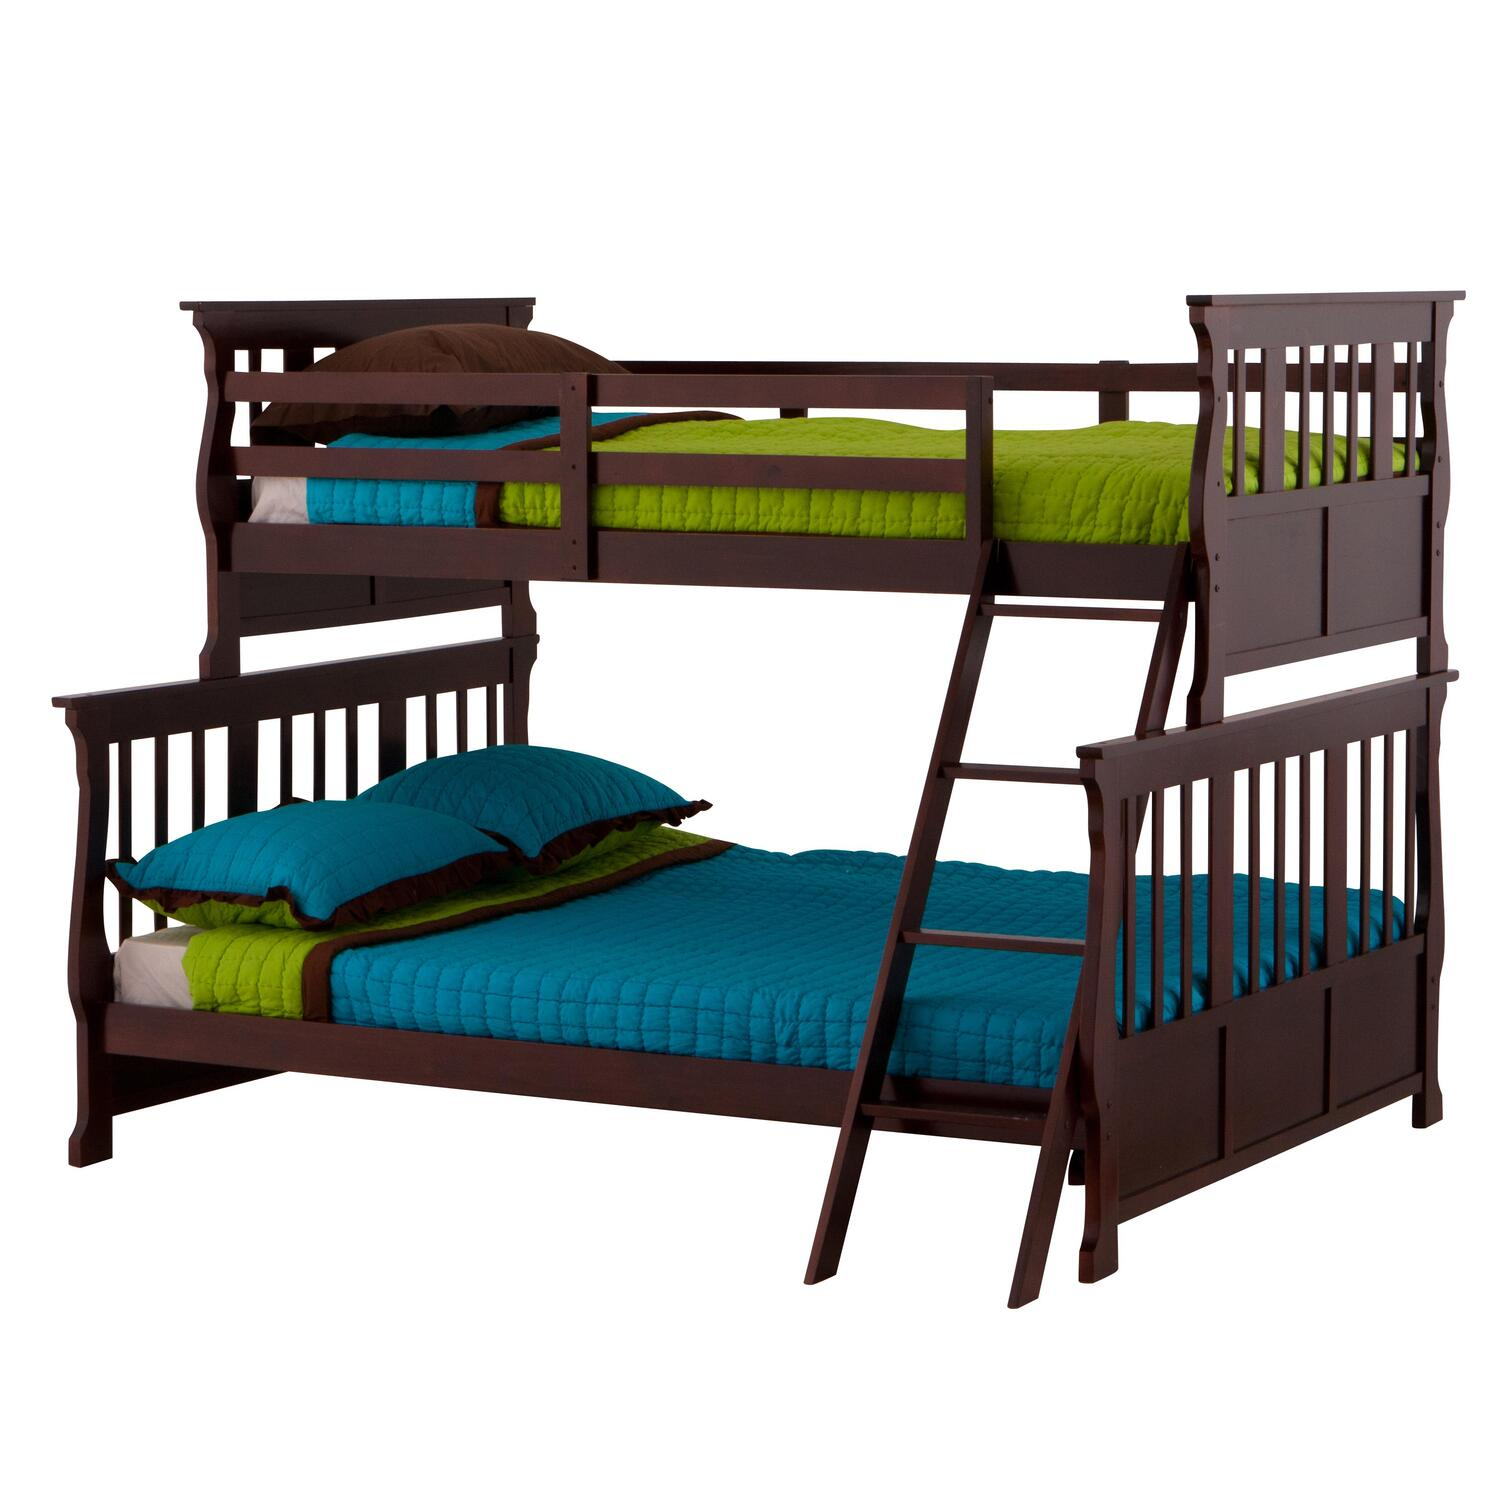 Home Twin Over Double Bunk Bed With Mattresses Pictures to pin on ...